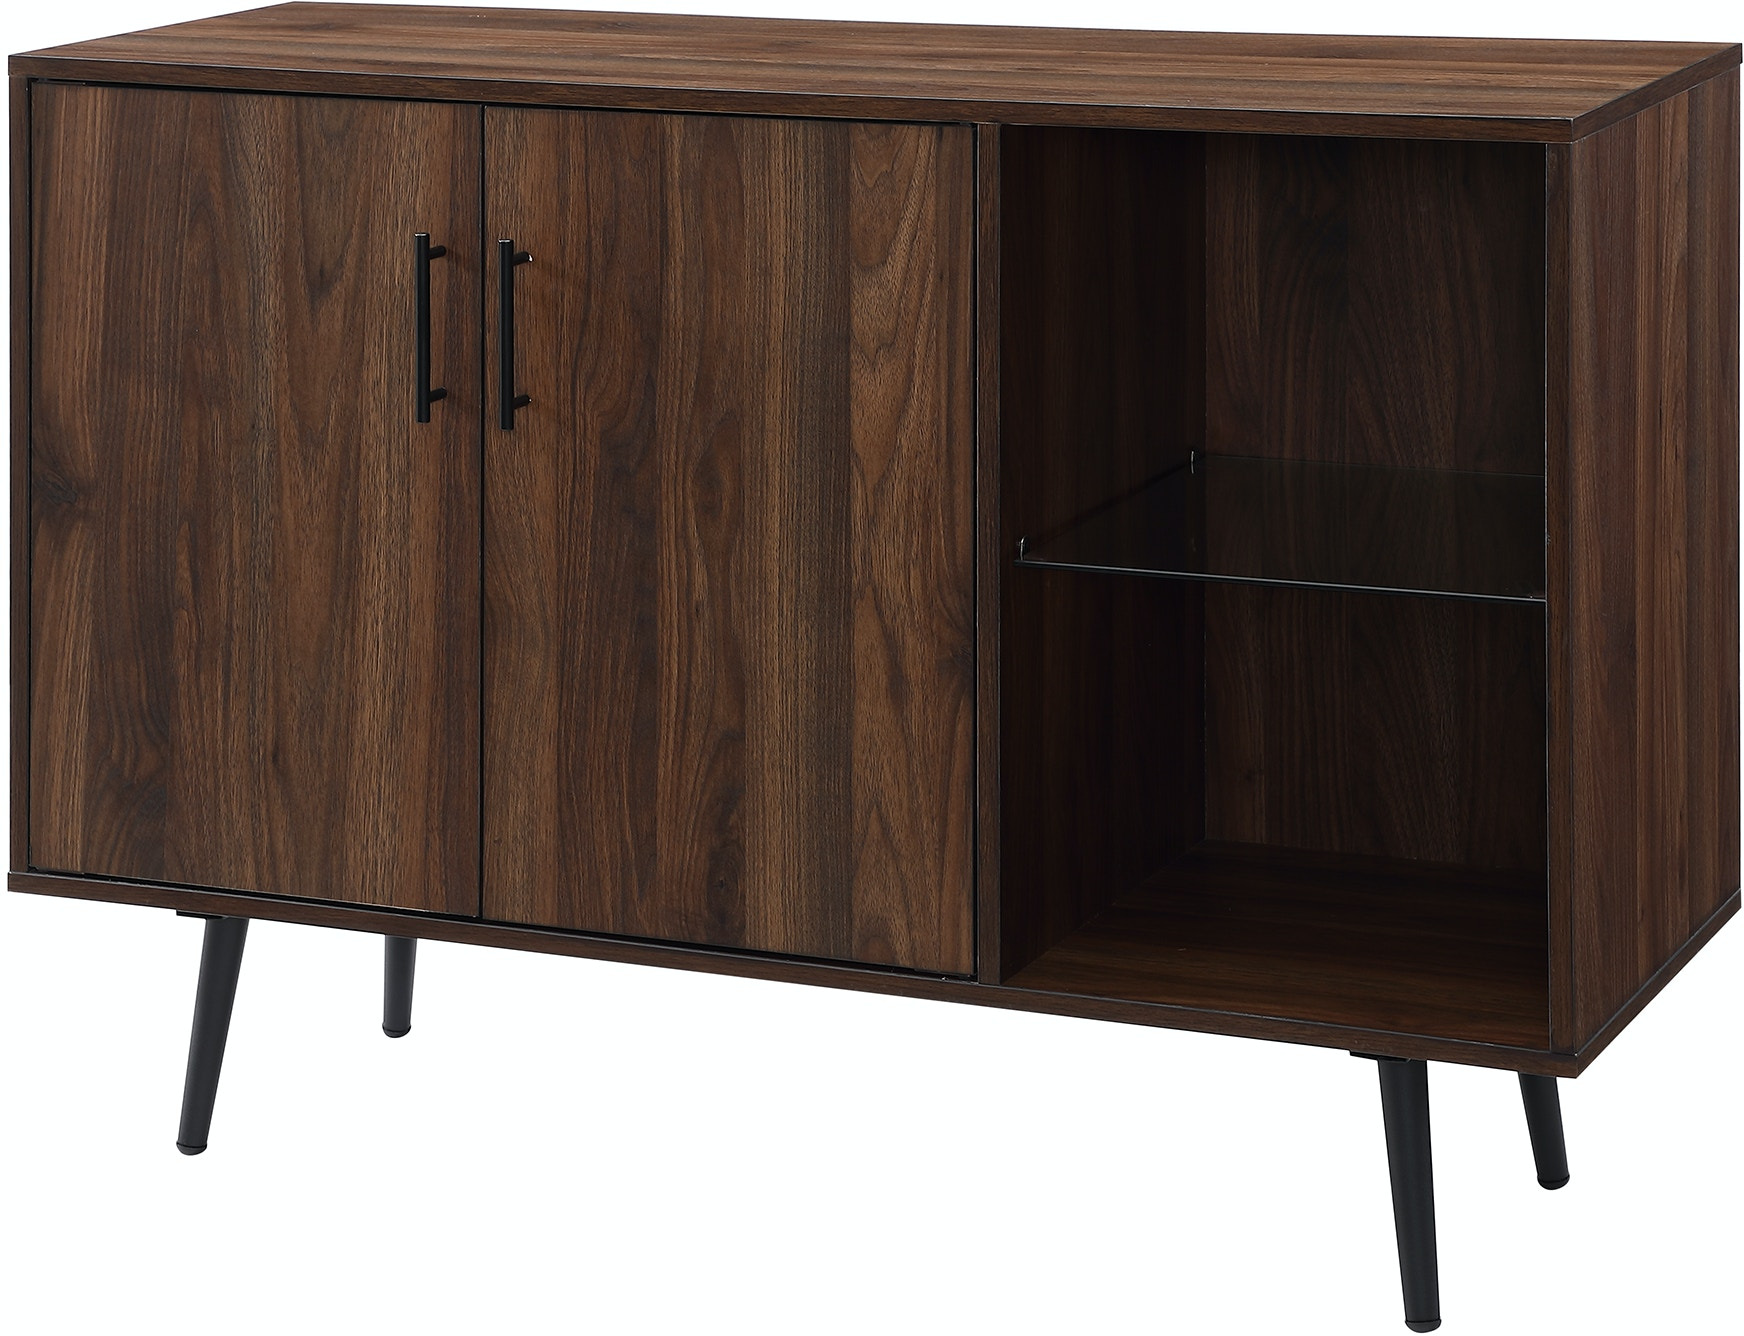 44 Mid Century Modern Transitional Asymetrical Sideboard Buffet Accent Storage Console Tv Stand Dark Walnut